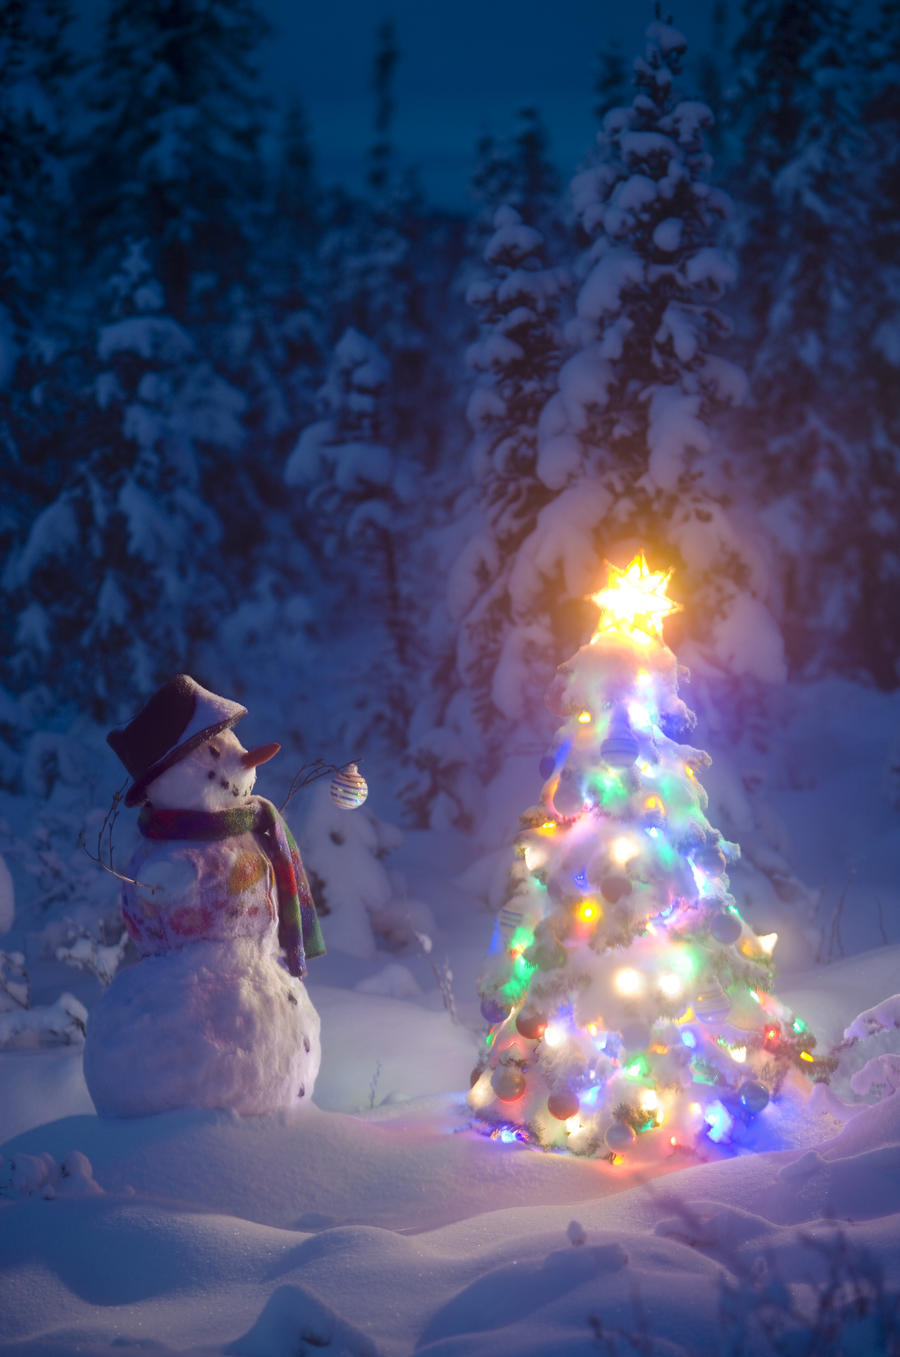 Snowman Stands In A Snowcovered Spruce Forest Next To A